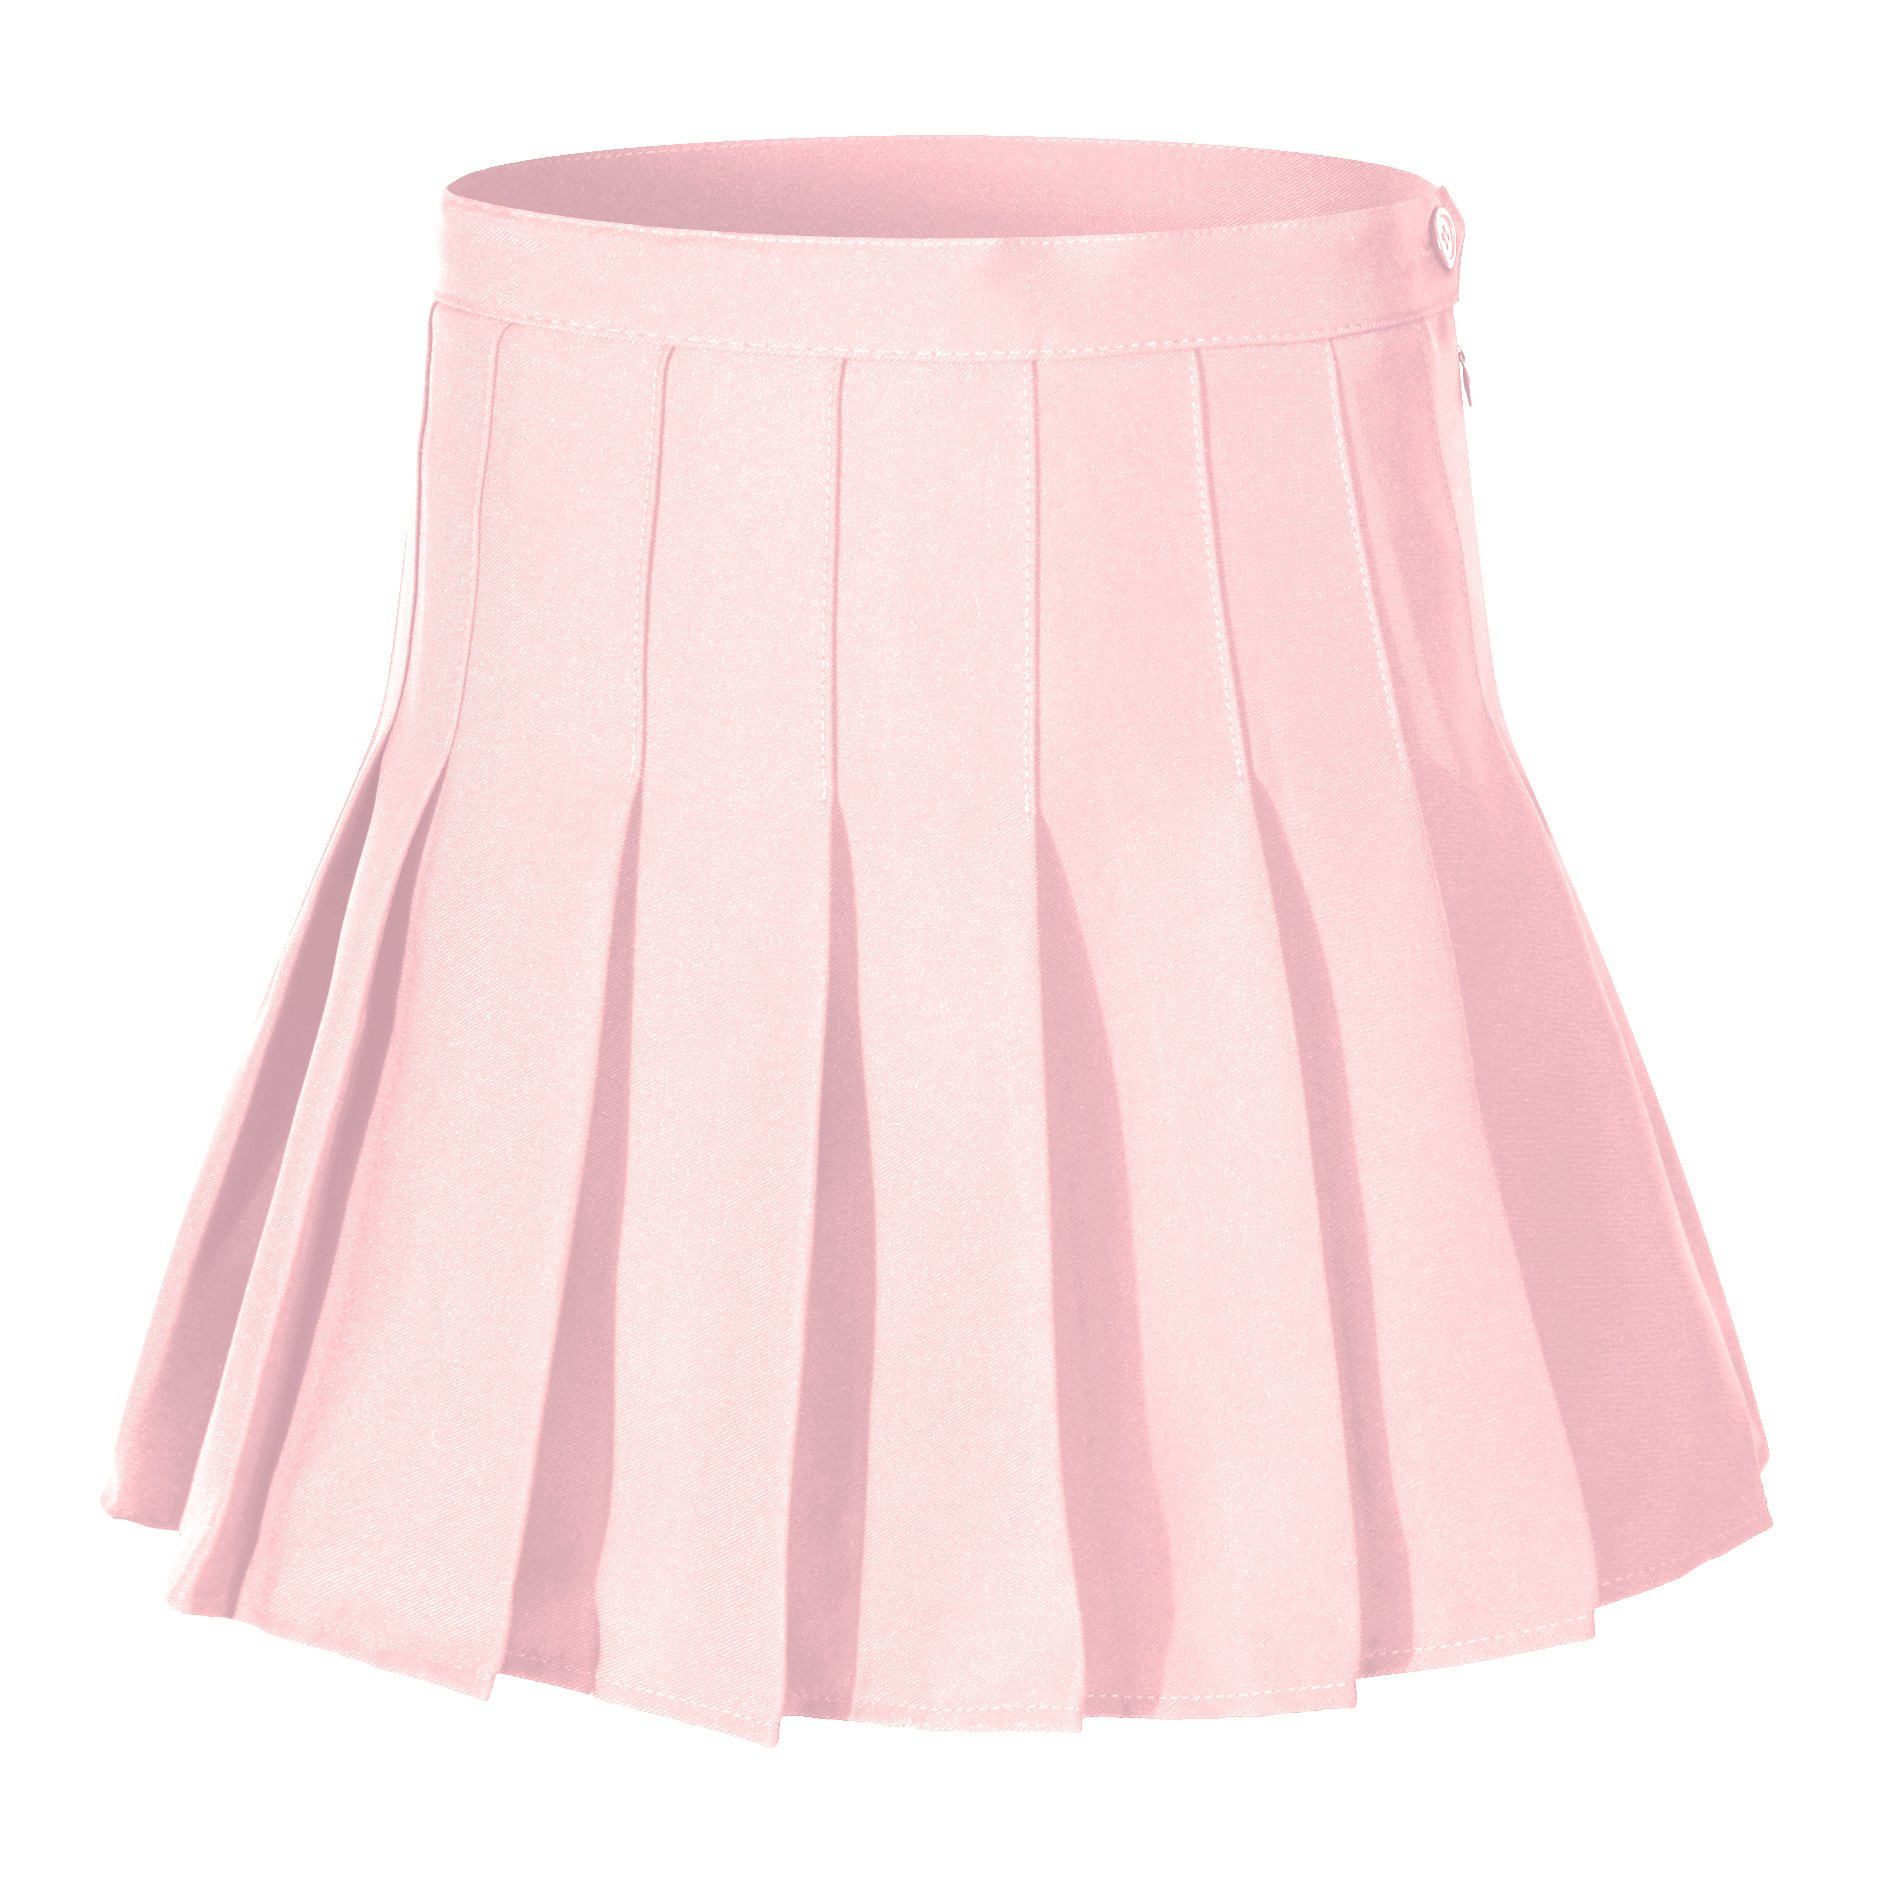 Beautifulfashionlife Women's High Waist Solid Pleated Mini Tennis Skirt (M, Red)